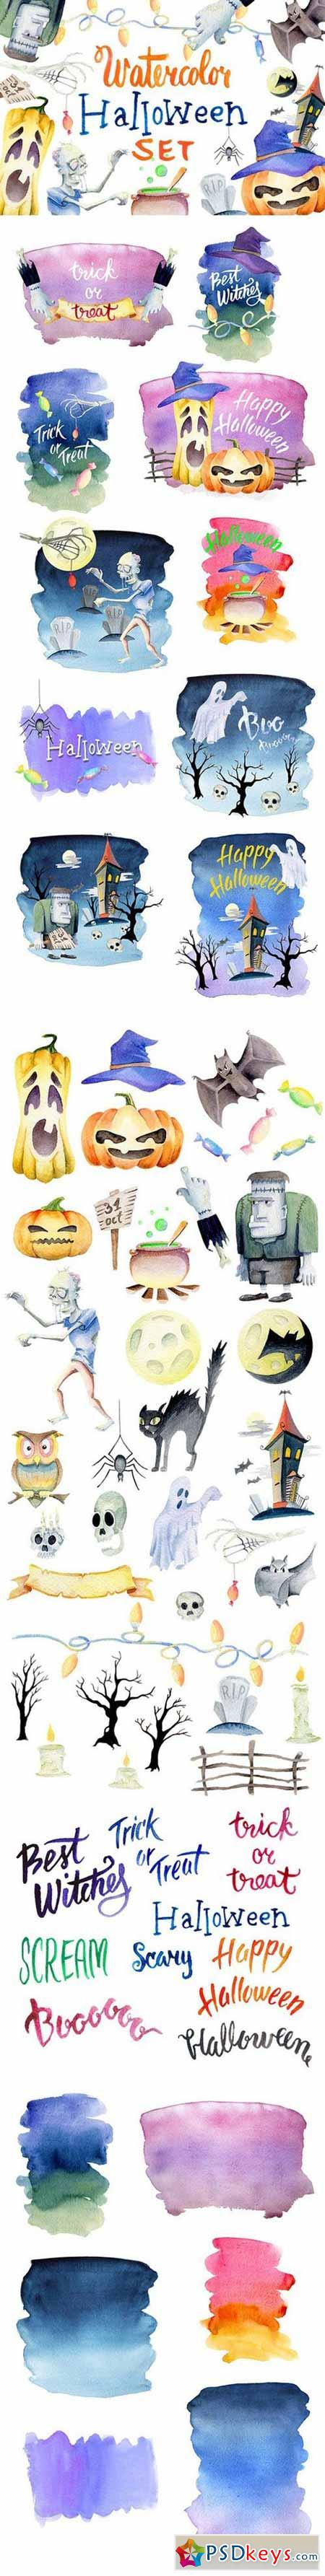 Watercolor Halloween Set 399511